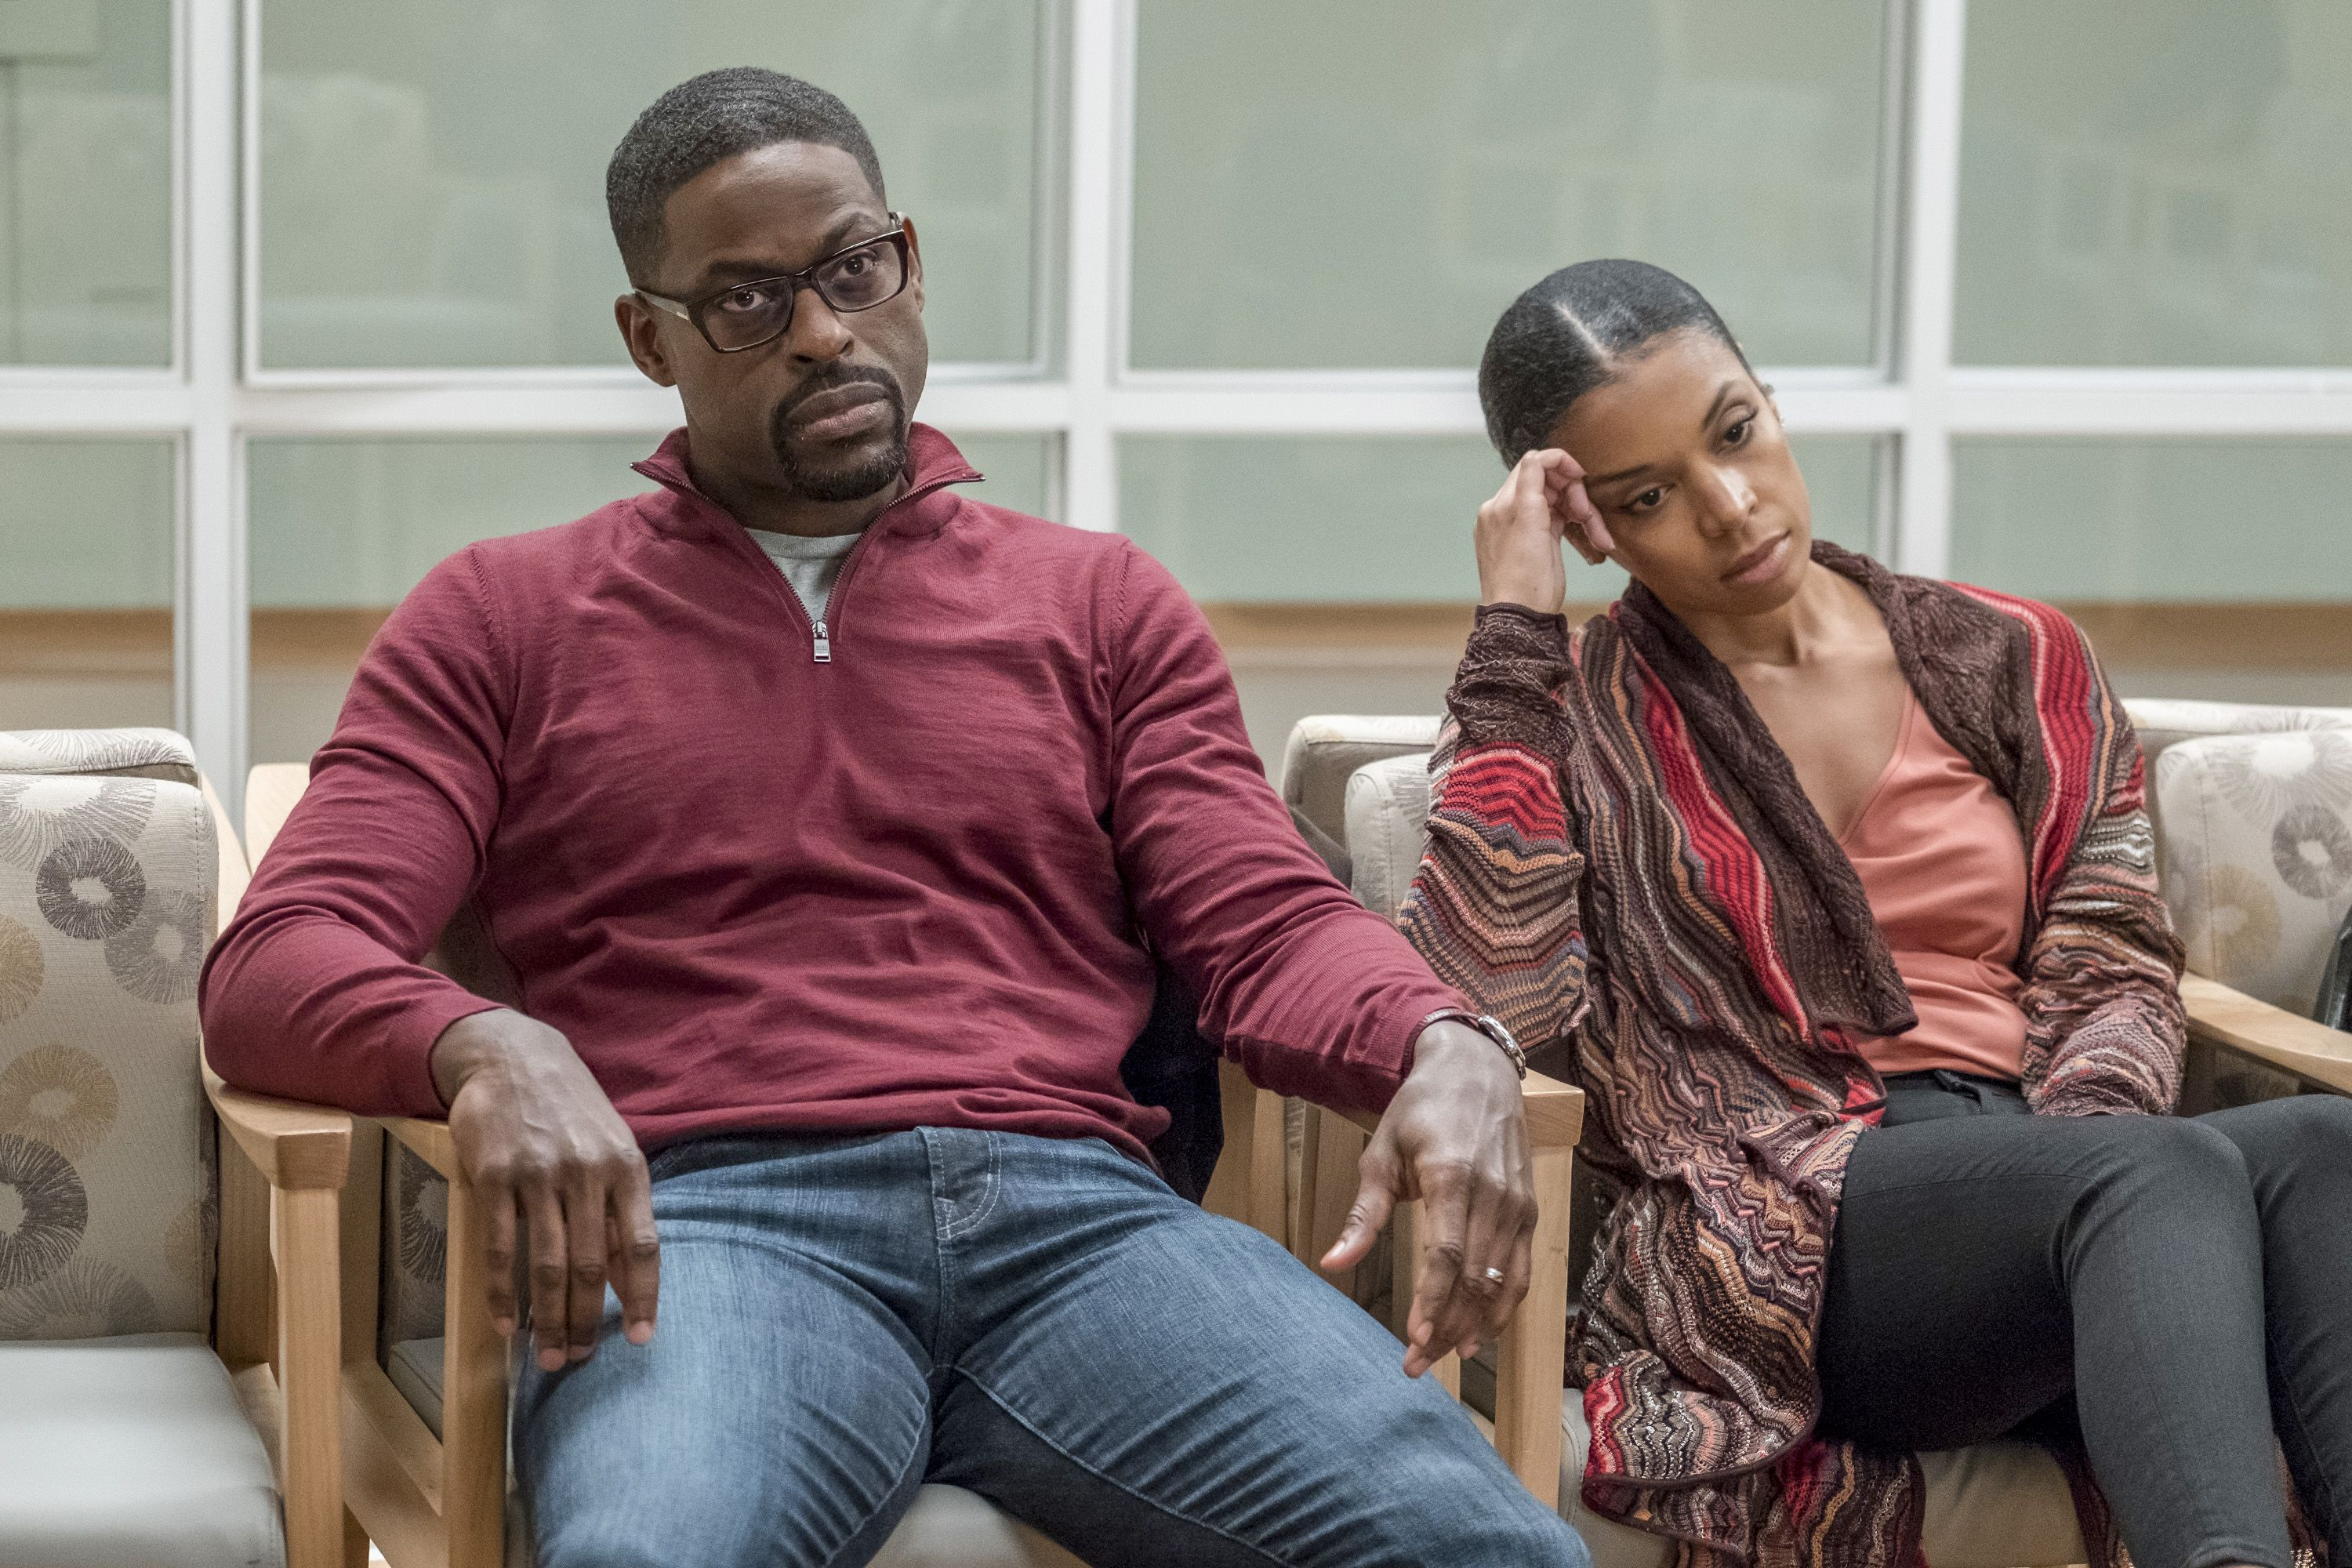 'This Is Us' finale: The big surprises and burning questions from that startling flash-forward